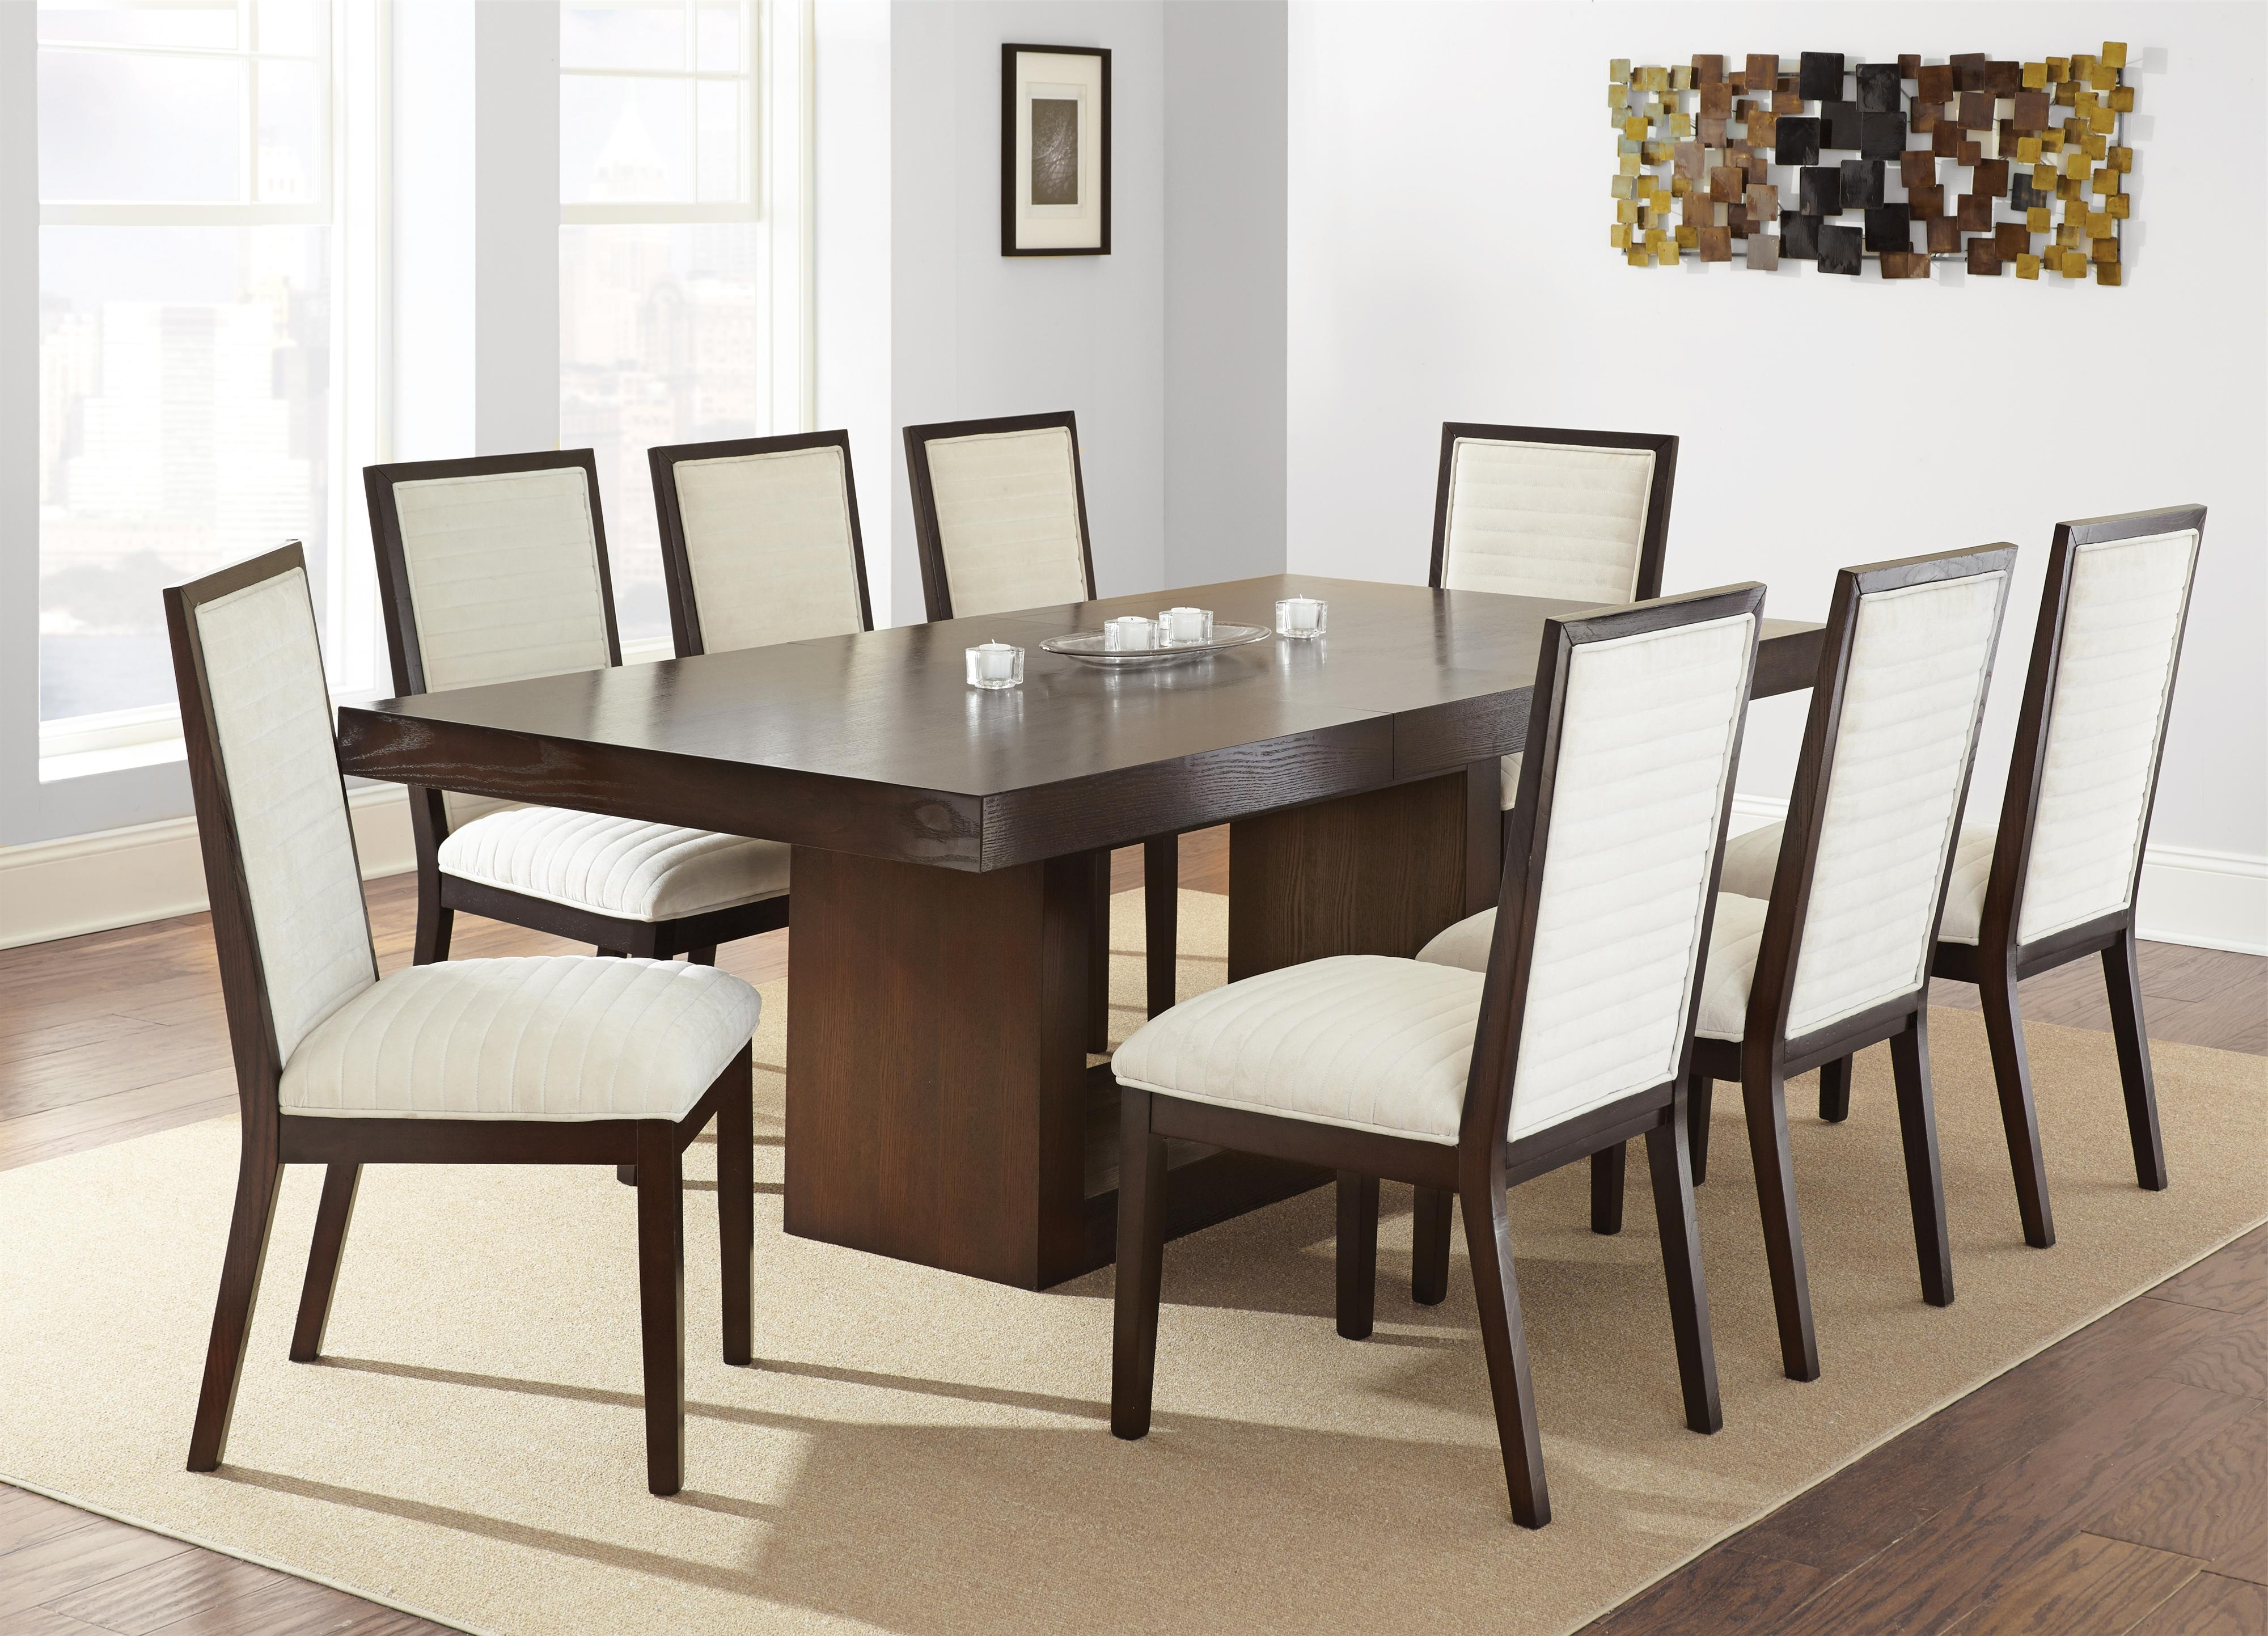 Most Current Jaxon 5 Piece Extension Round Dining Sets With Wood Chairs Regarding Steve Silver Antonio Dining Table With Contemporary Pedestal Base (View 19 of 25)